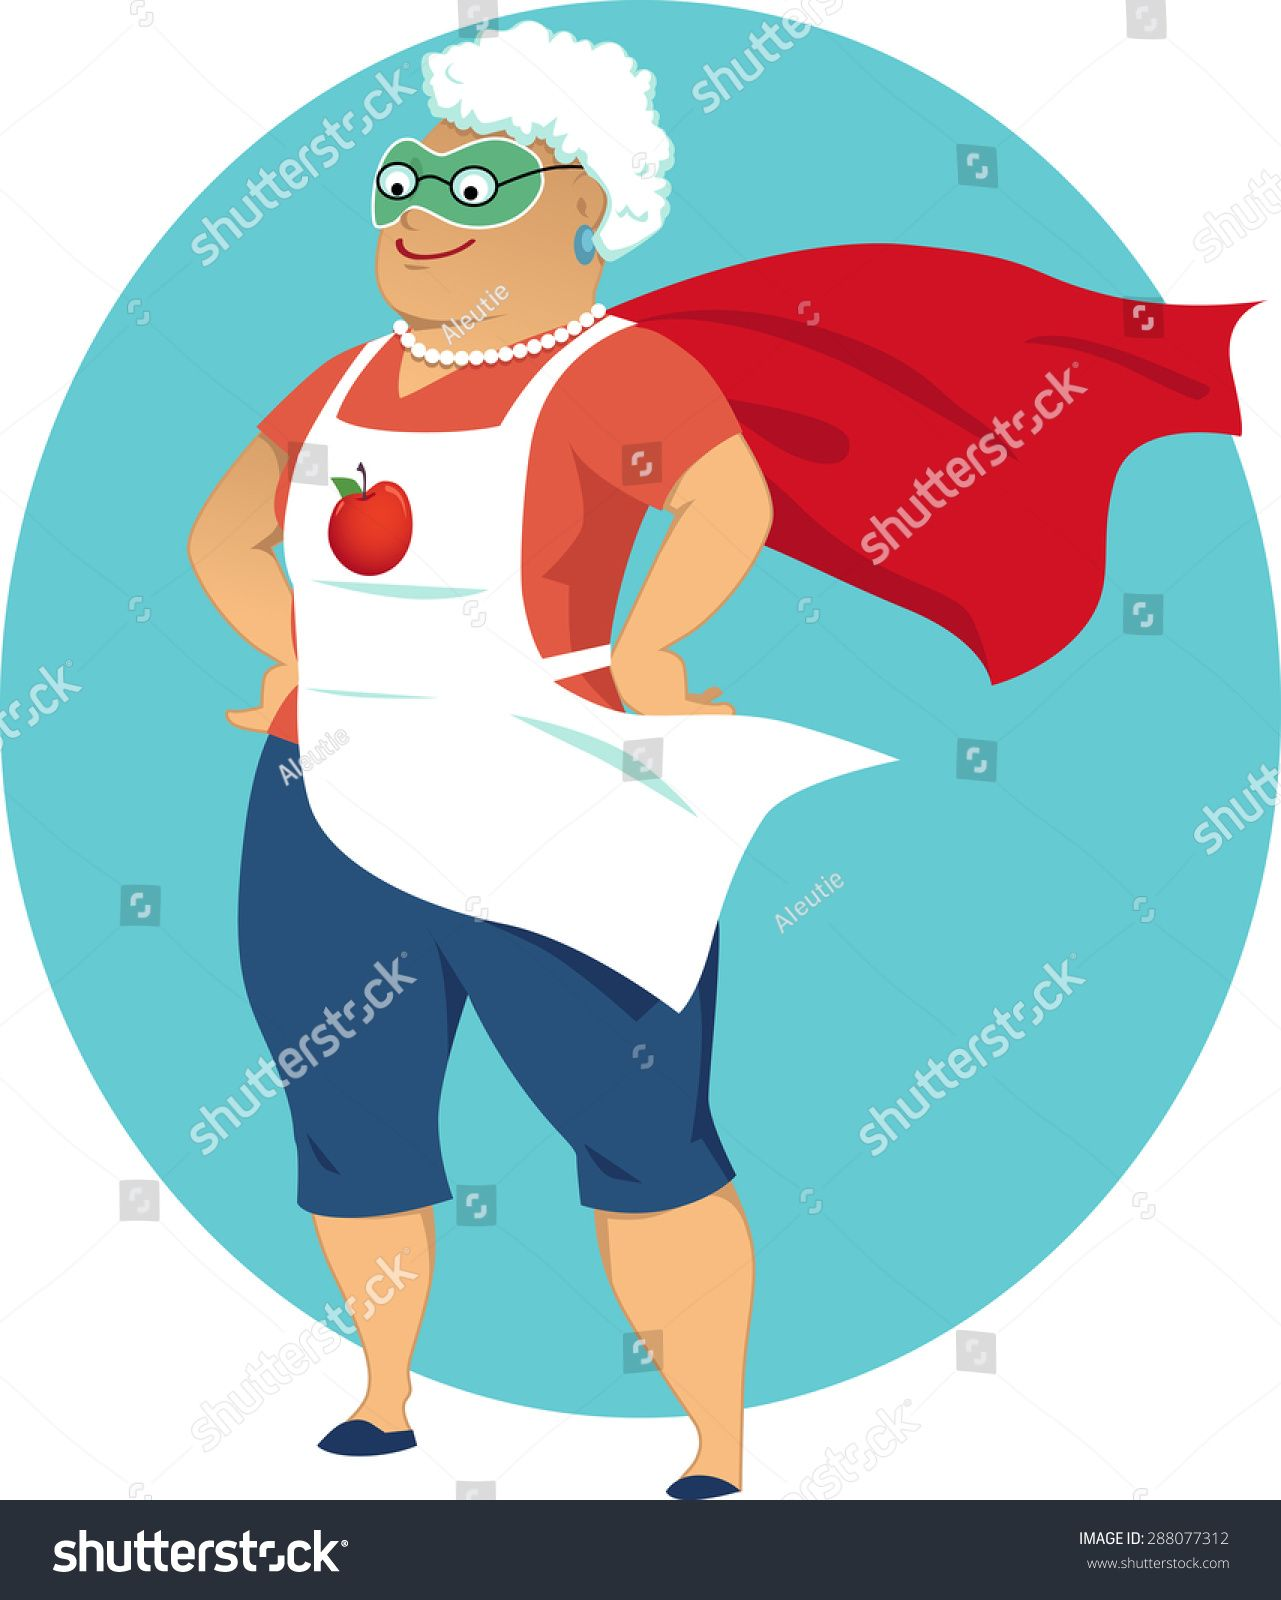 Super grandma, cartoon old lady in an apron and a superhero